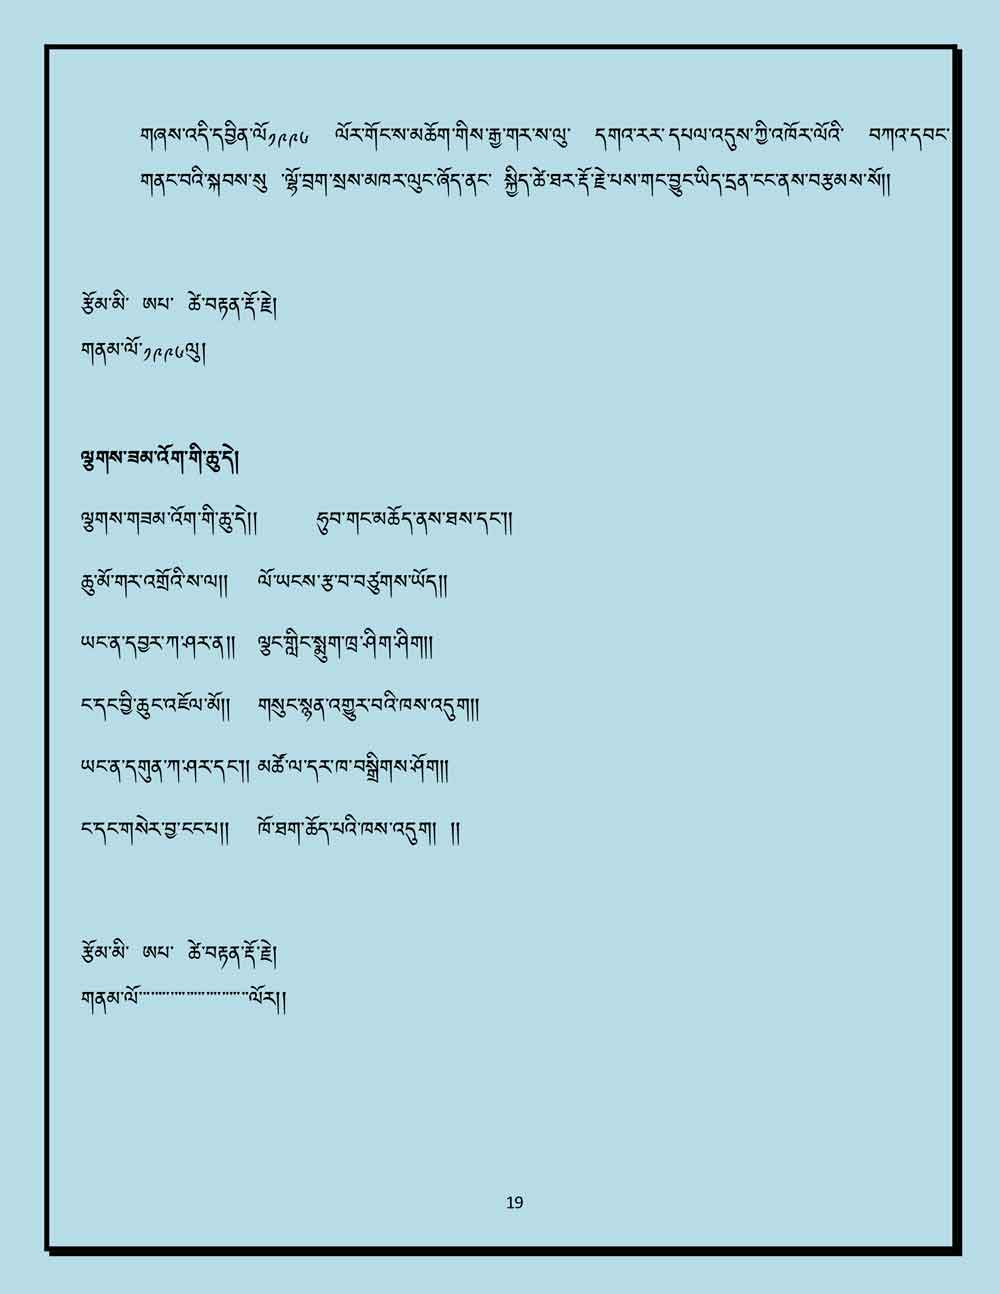 Ap-Tseten-Lyrics-19.jpg